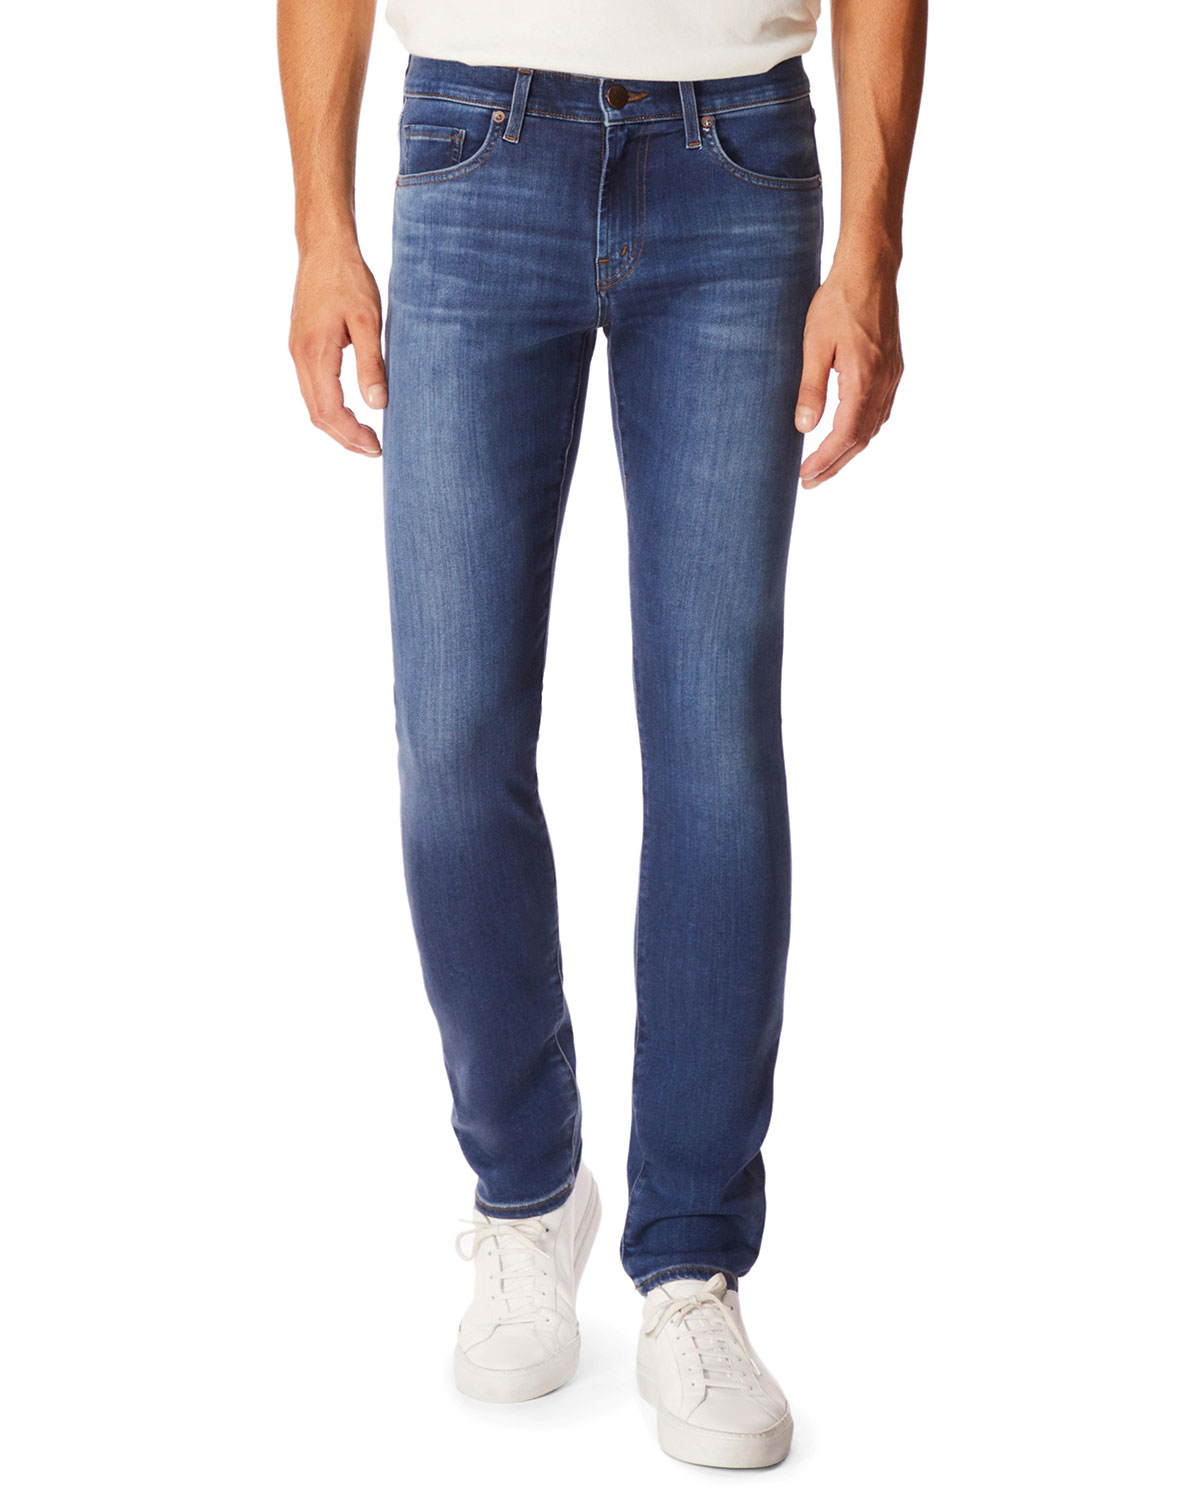 J Brand Jeans MEN'S TYLER SLIM-FIT SERIOUSLY SOFT JEANS